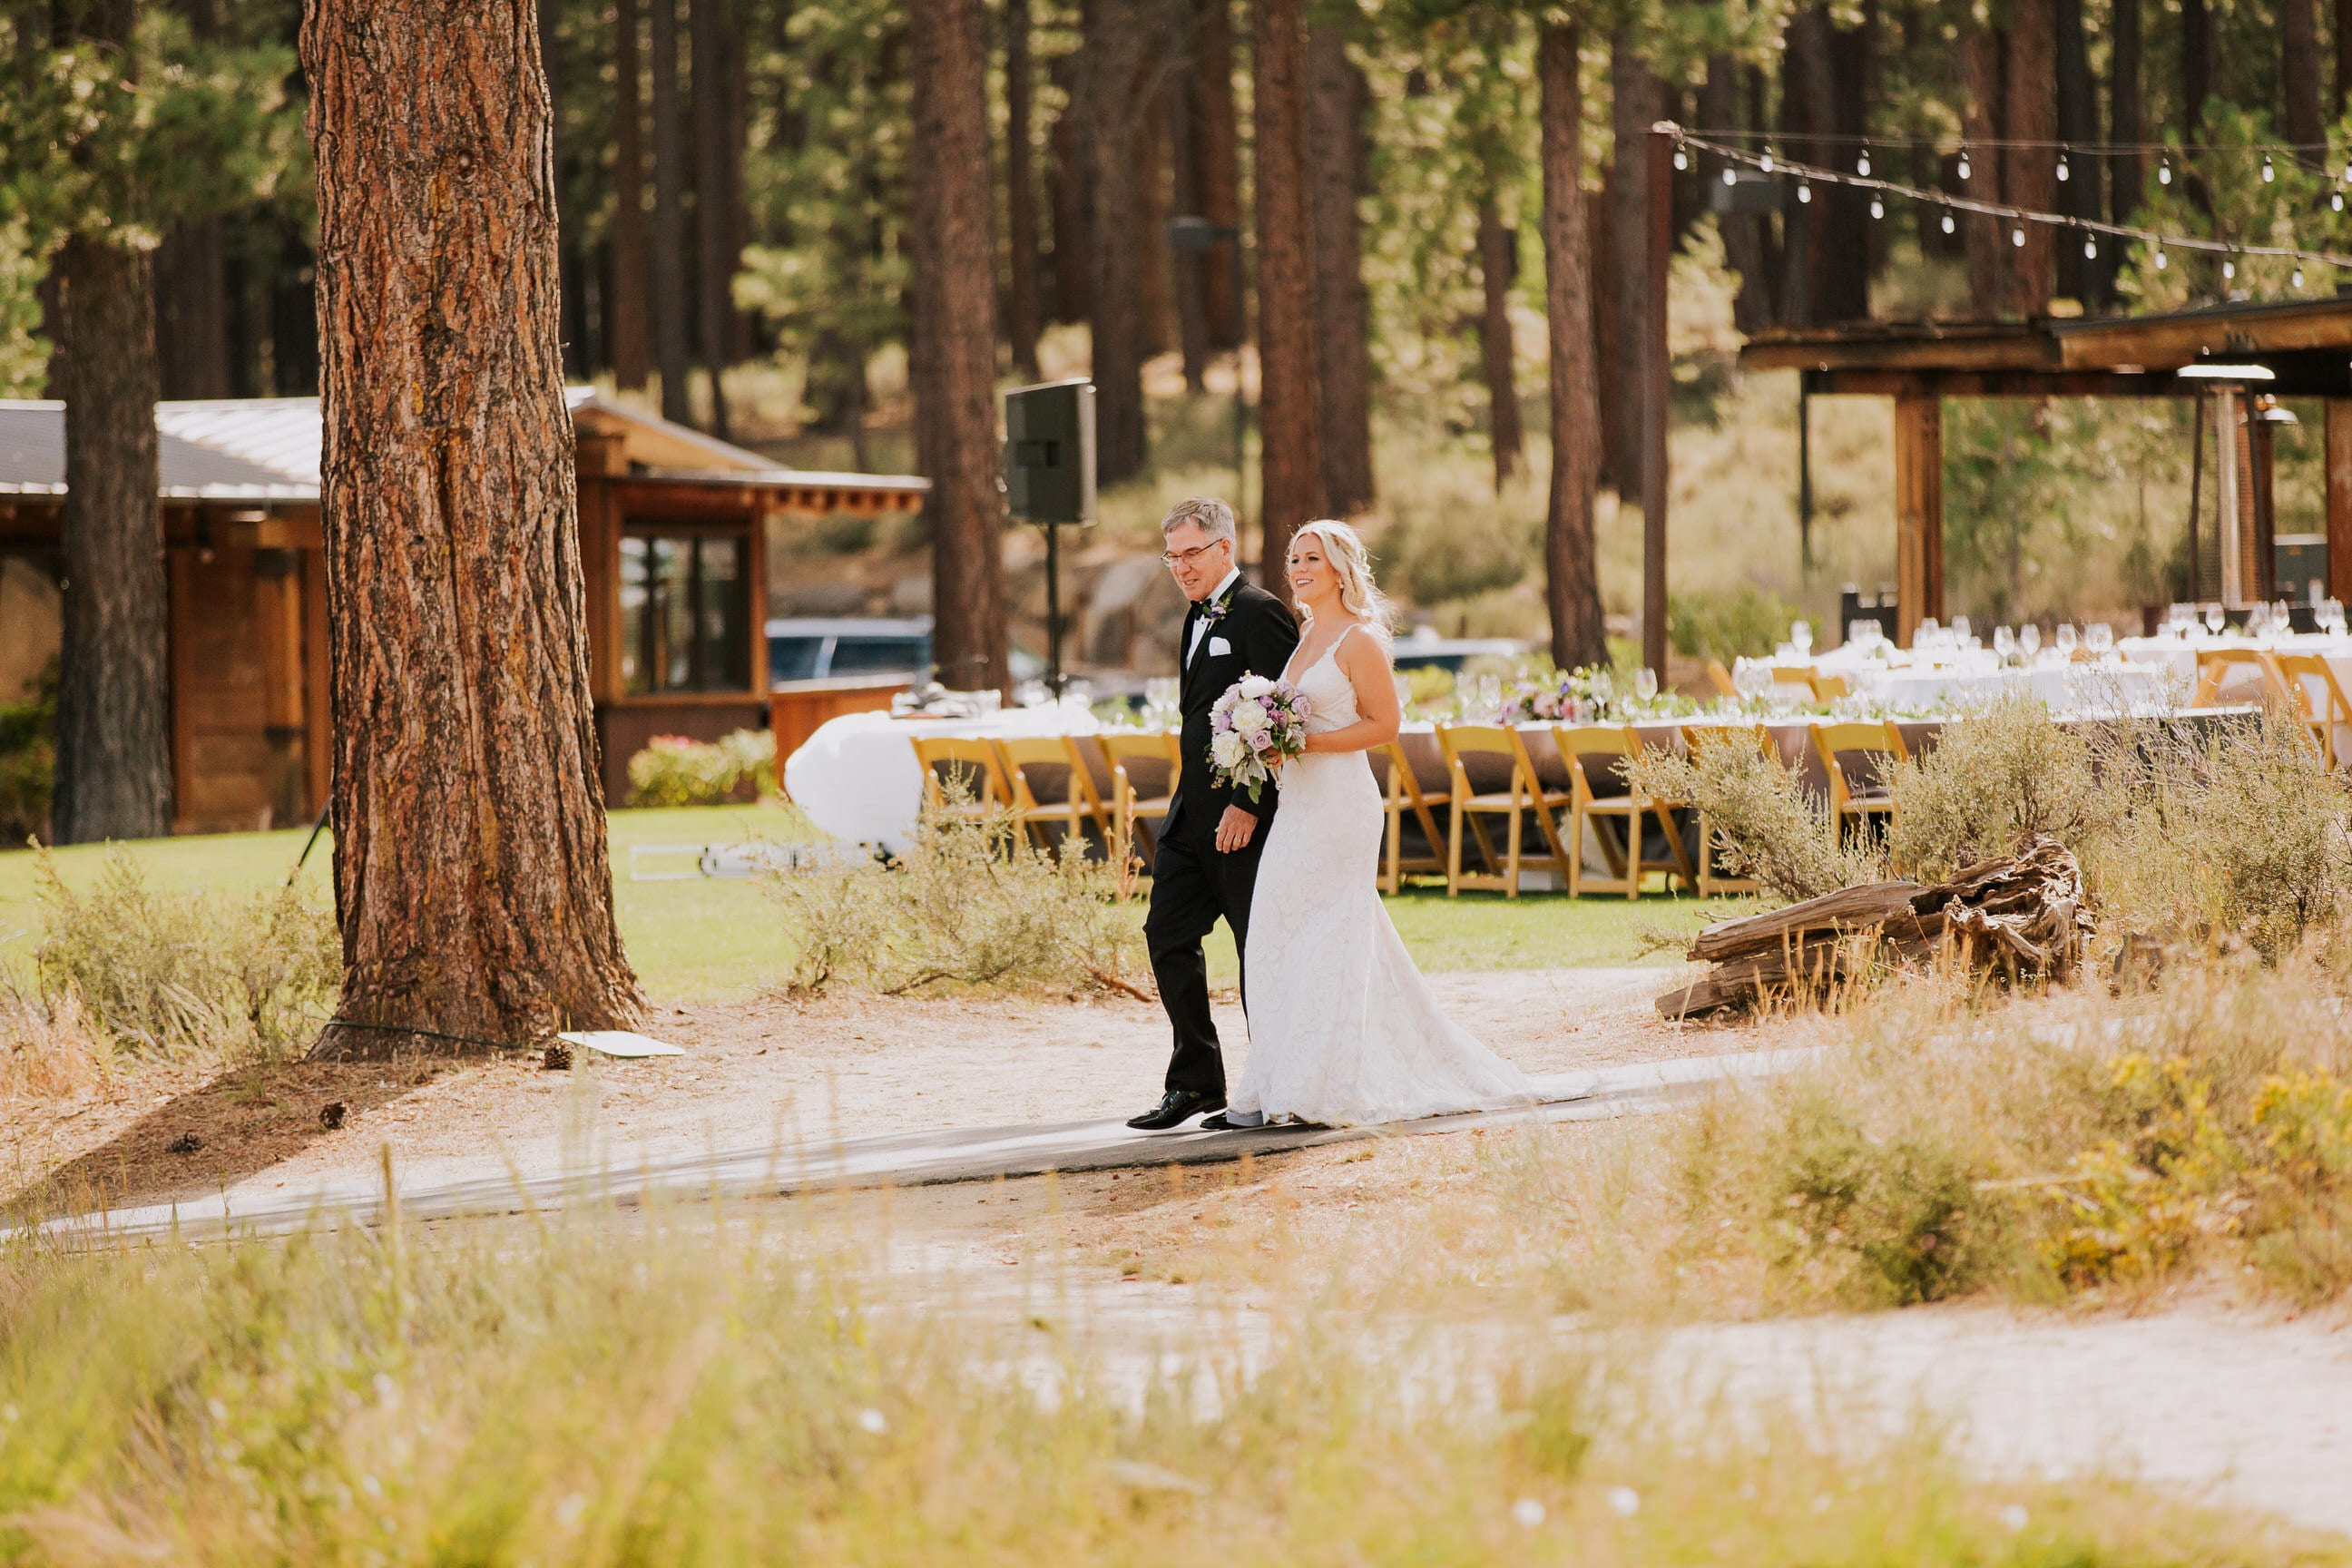 bride's father escorts bride down aisle in outdoor Truckee California wedding ceremony